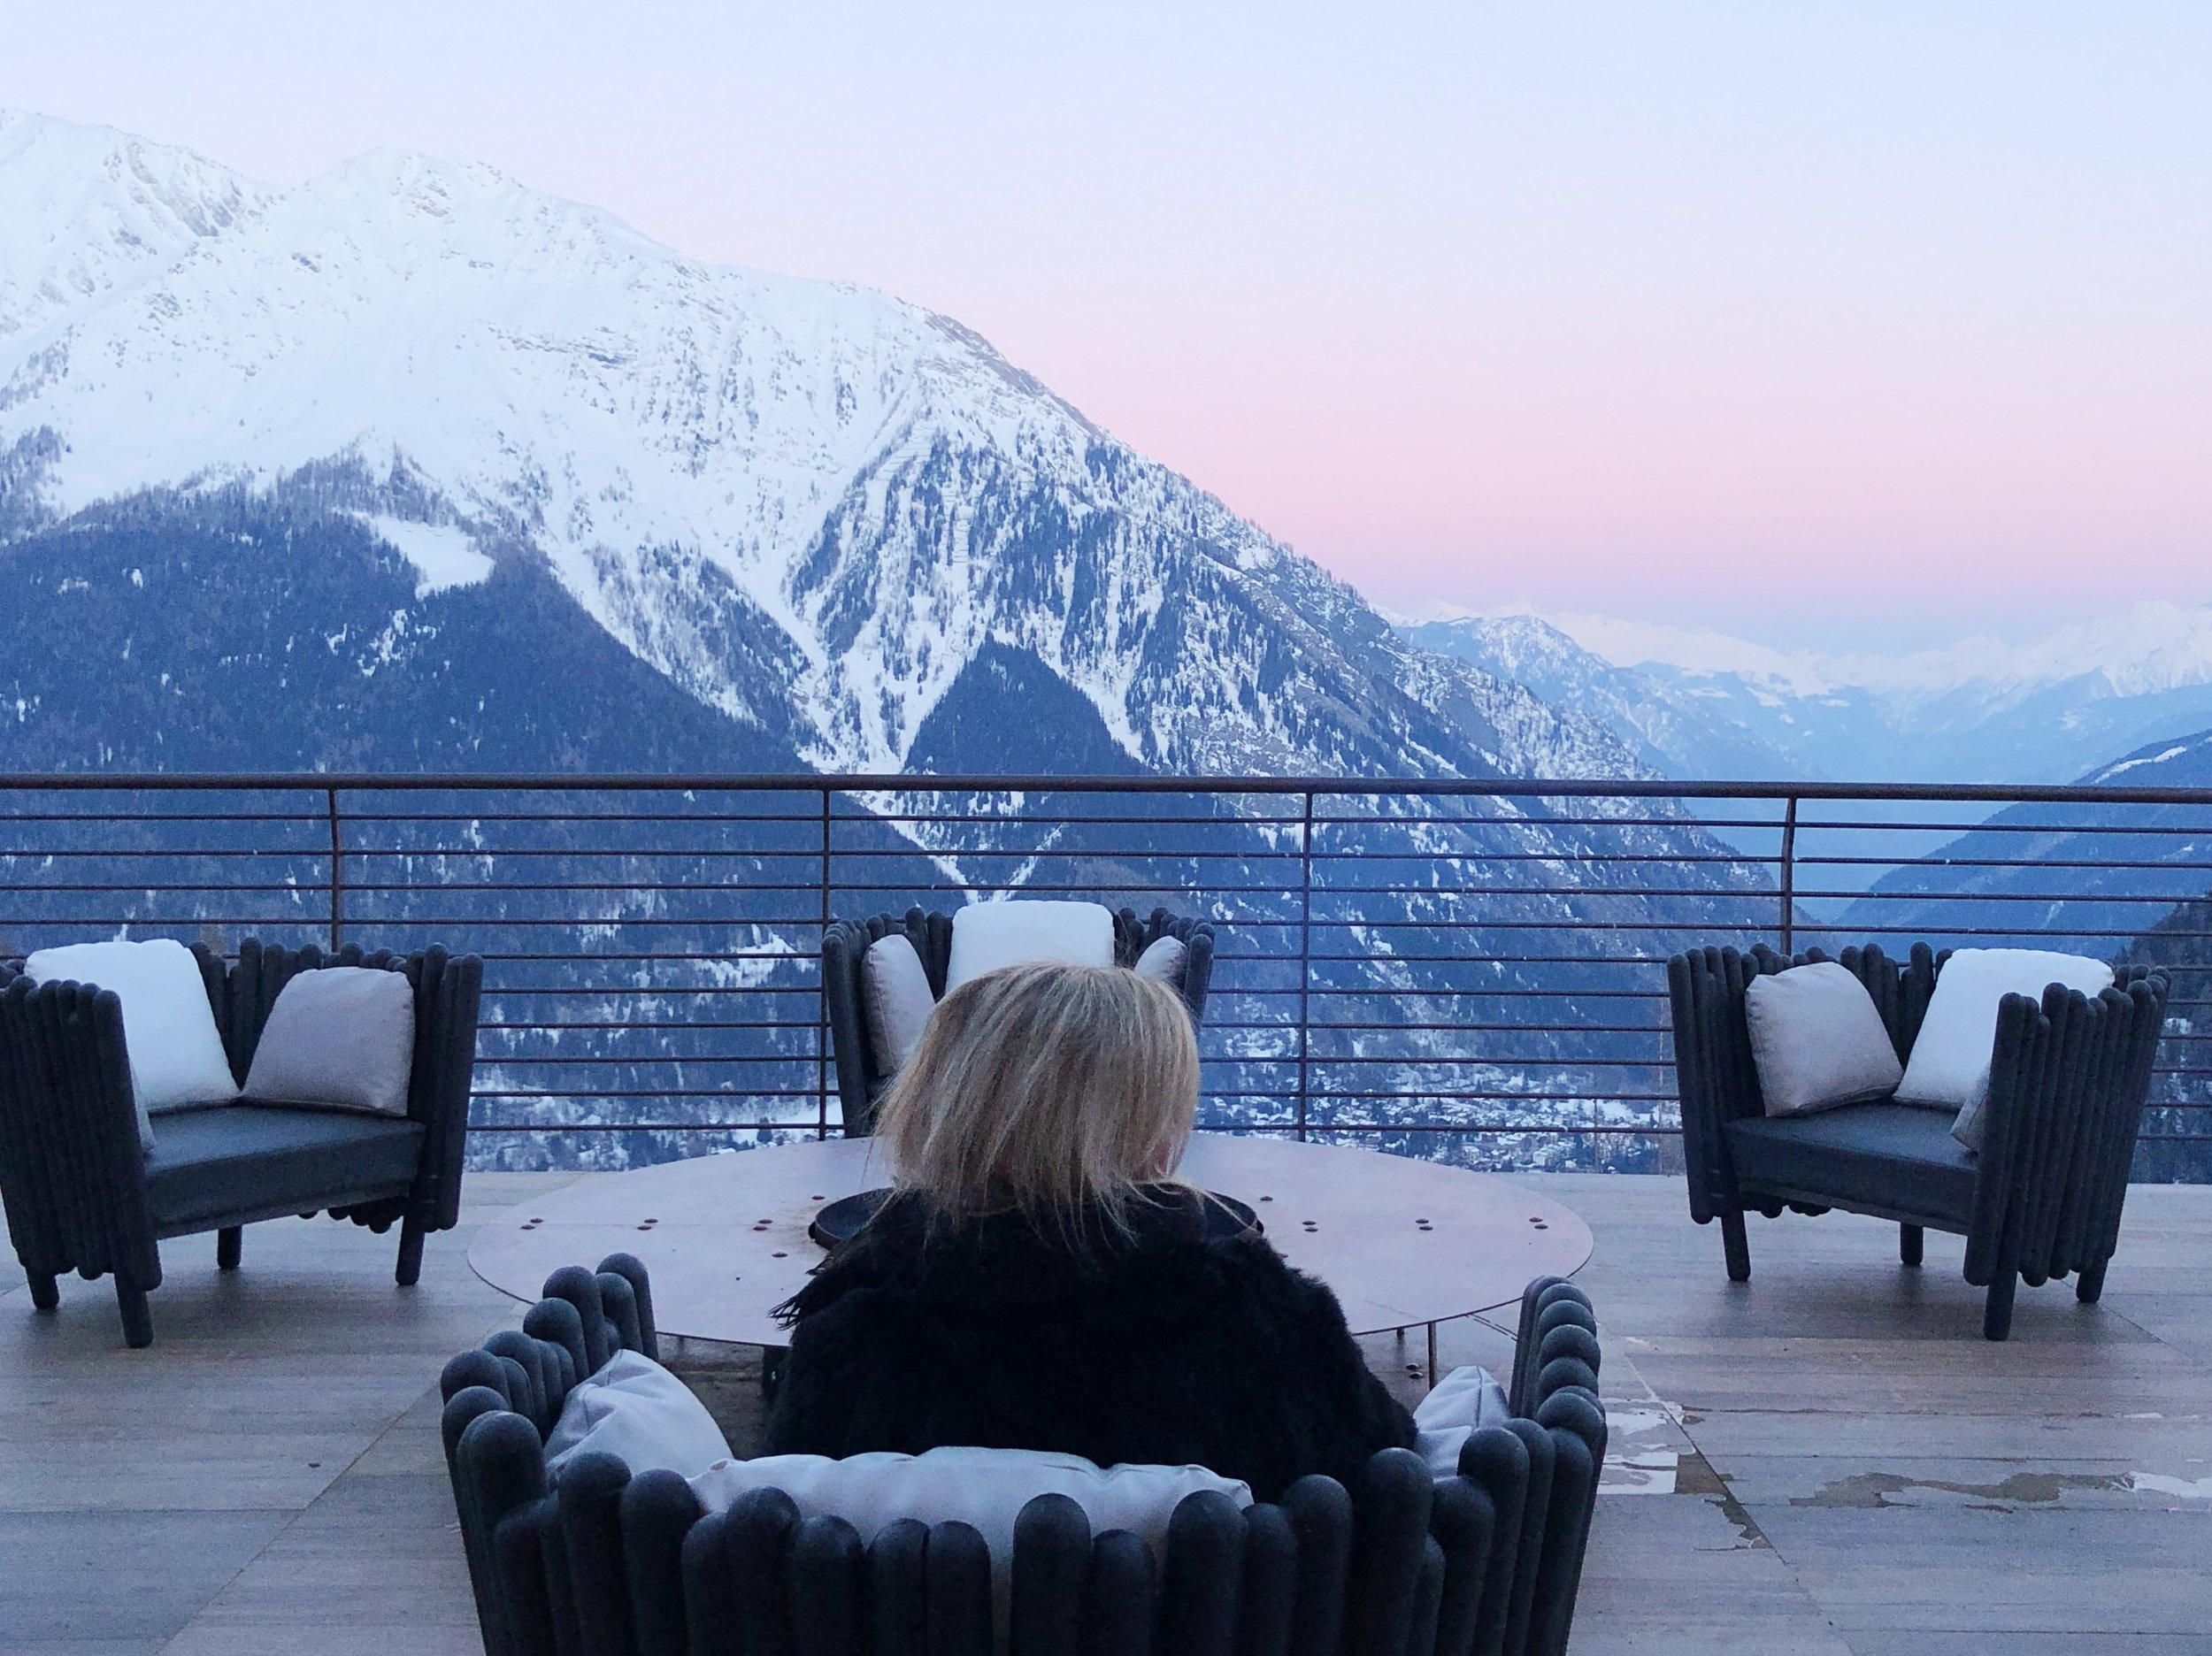 Enjoying Monte Bianco from Le Massif. All photos by Erica Firpo.